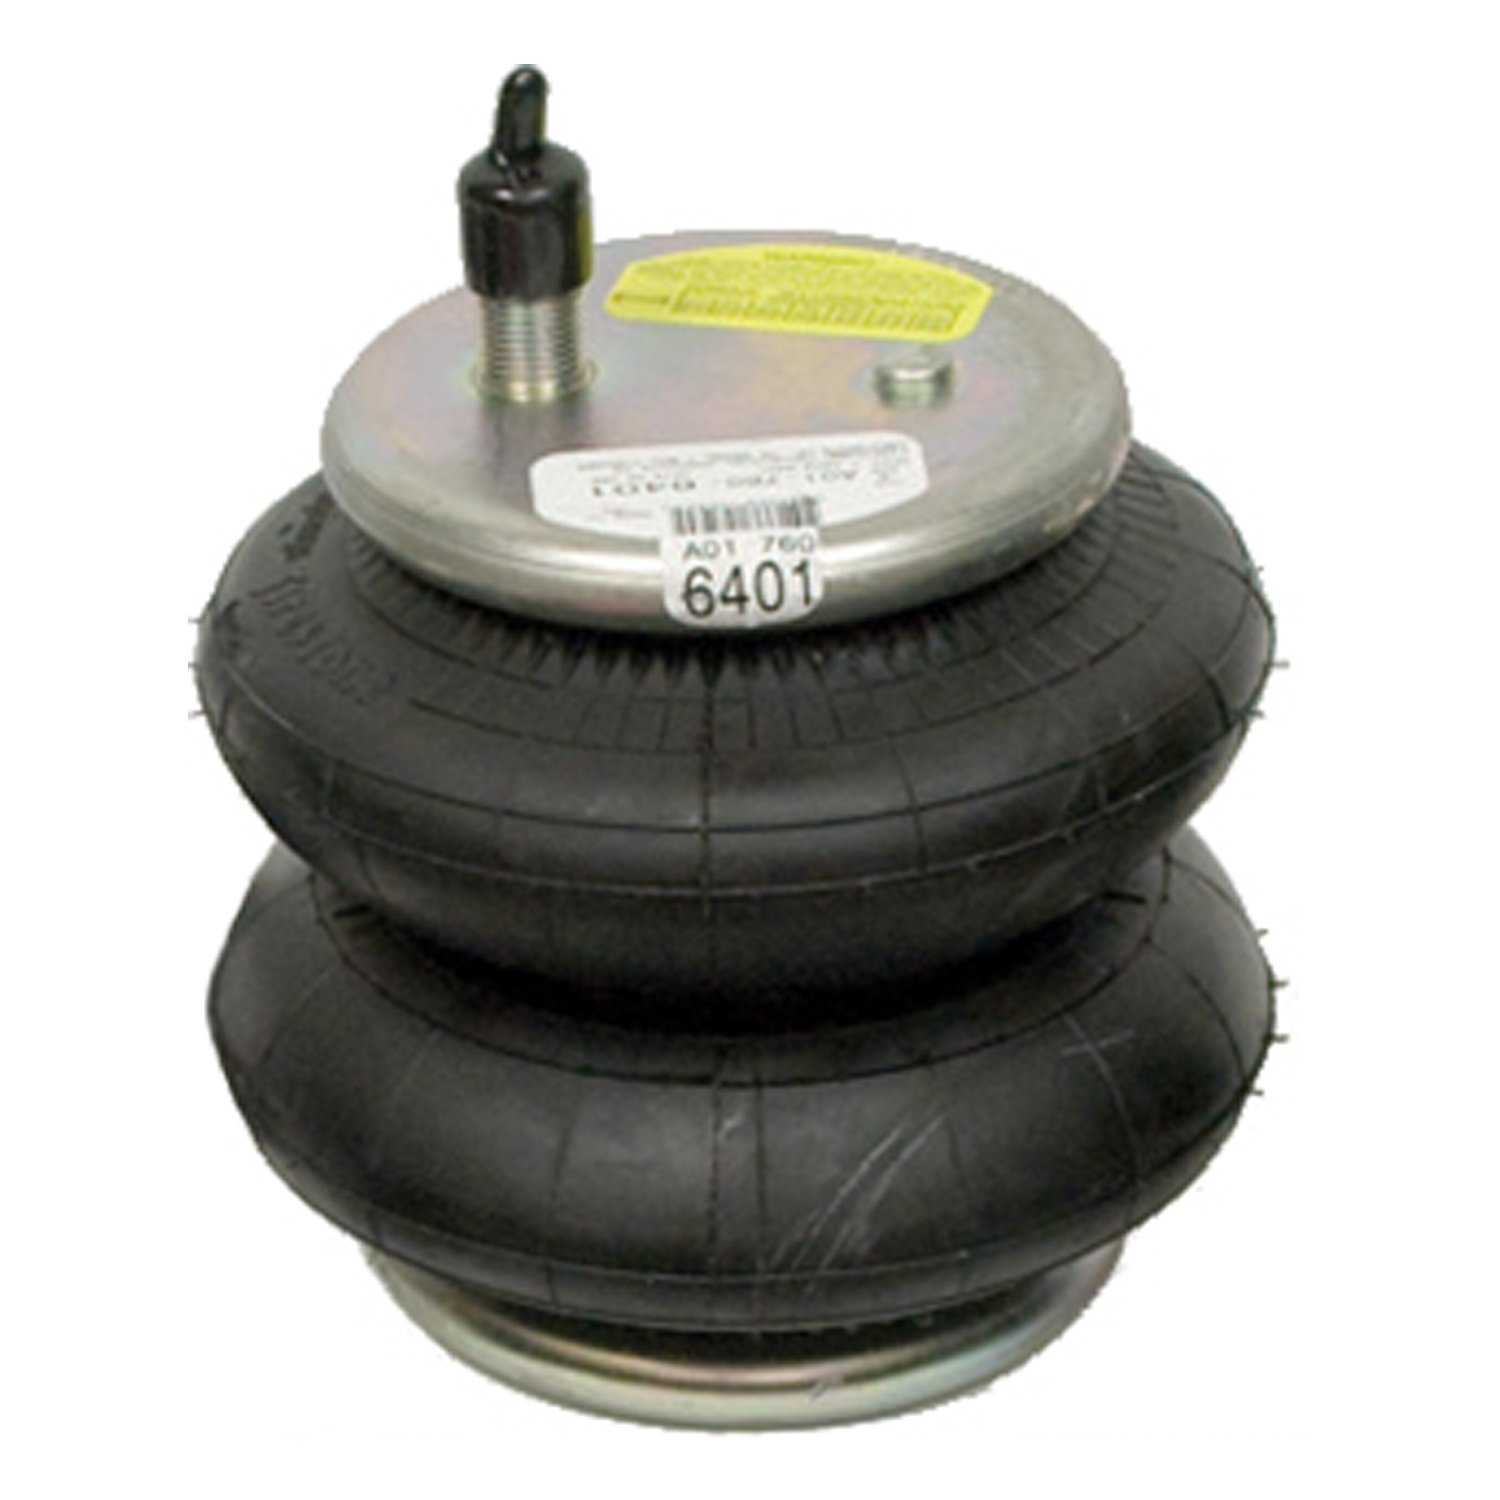 Firestone 6401 Replacement Air Bag